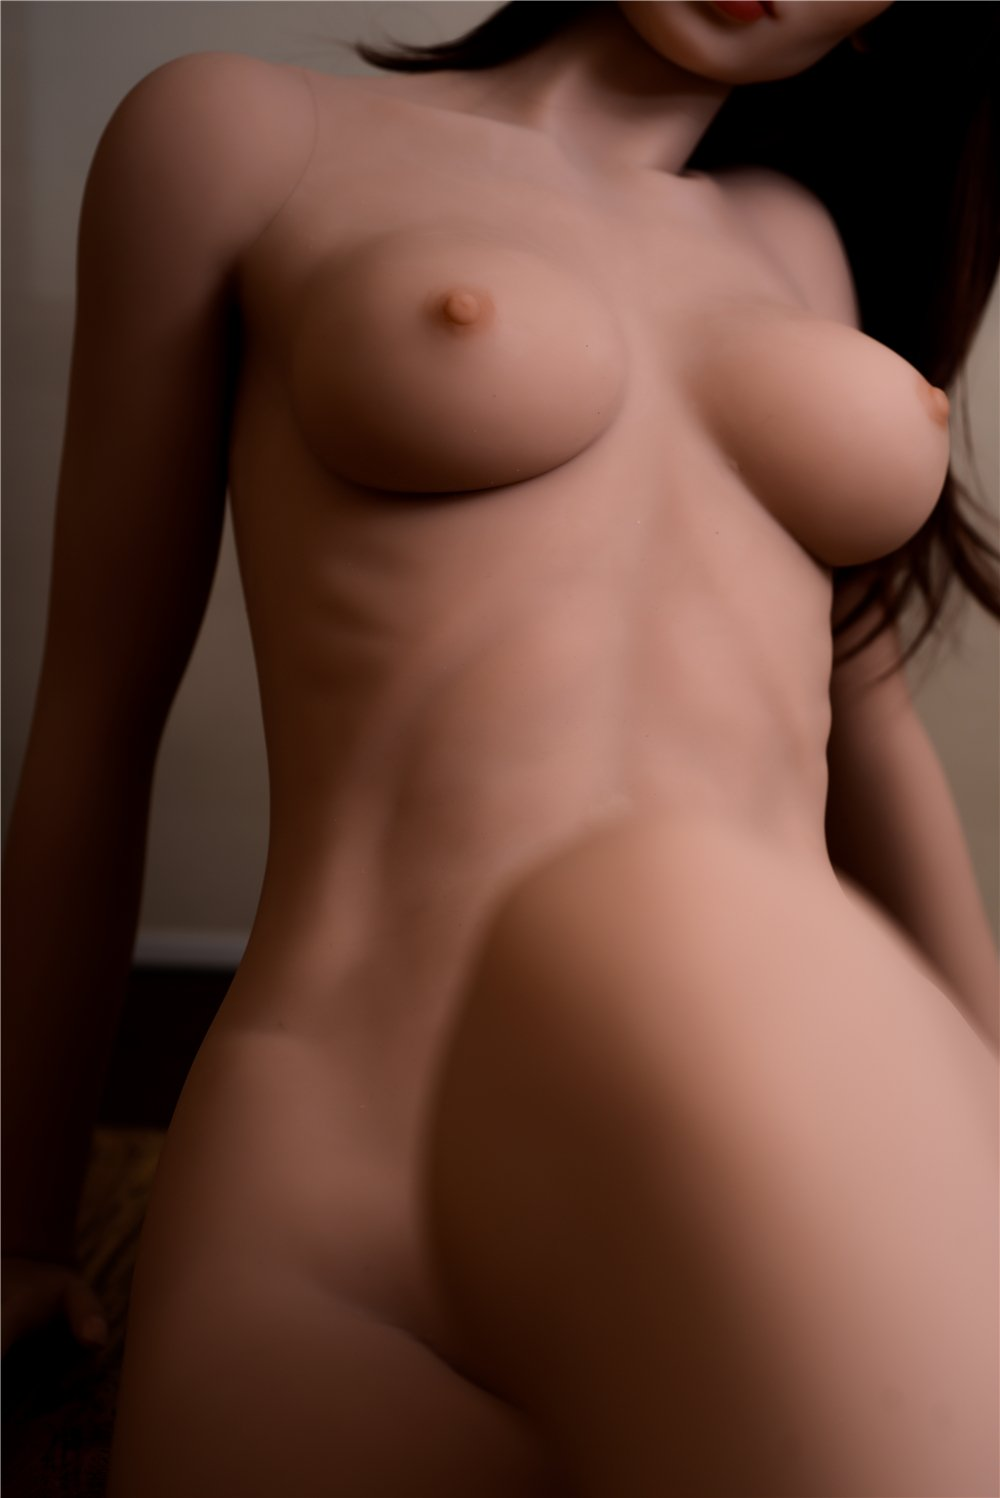 sharrie 168cm brown hair medium tits skinny red hair flat chested tpe asian sex doll(7)